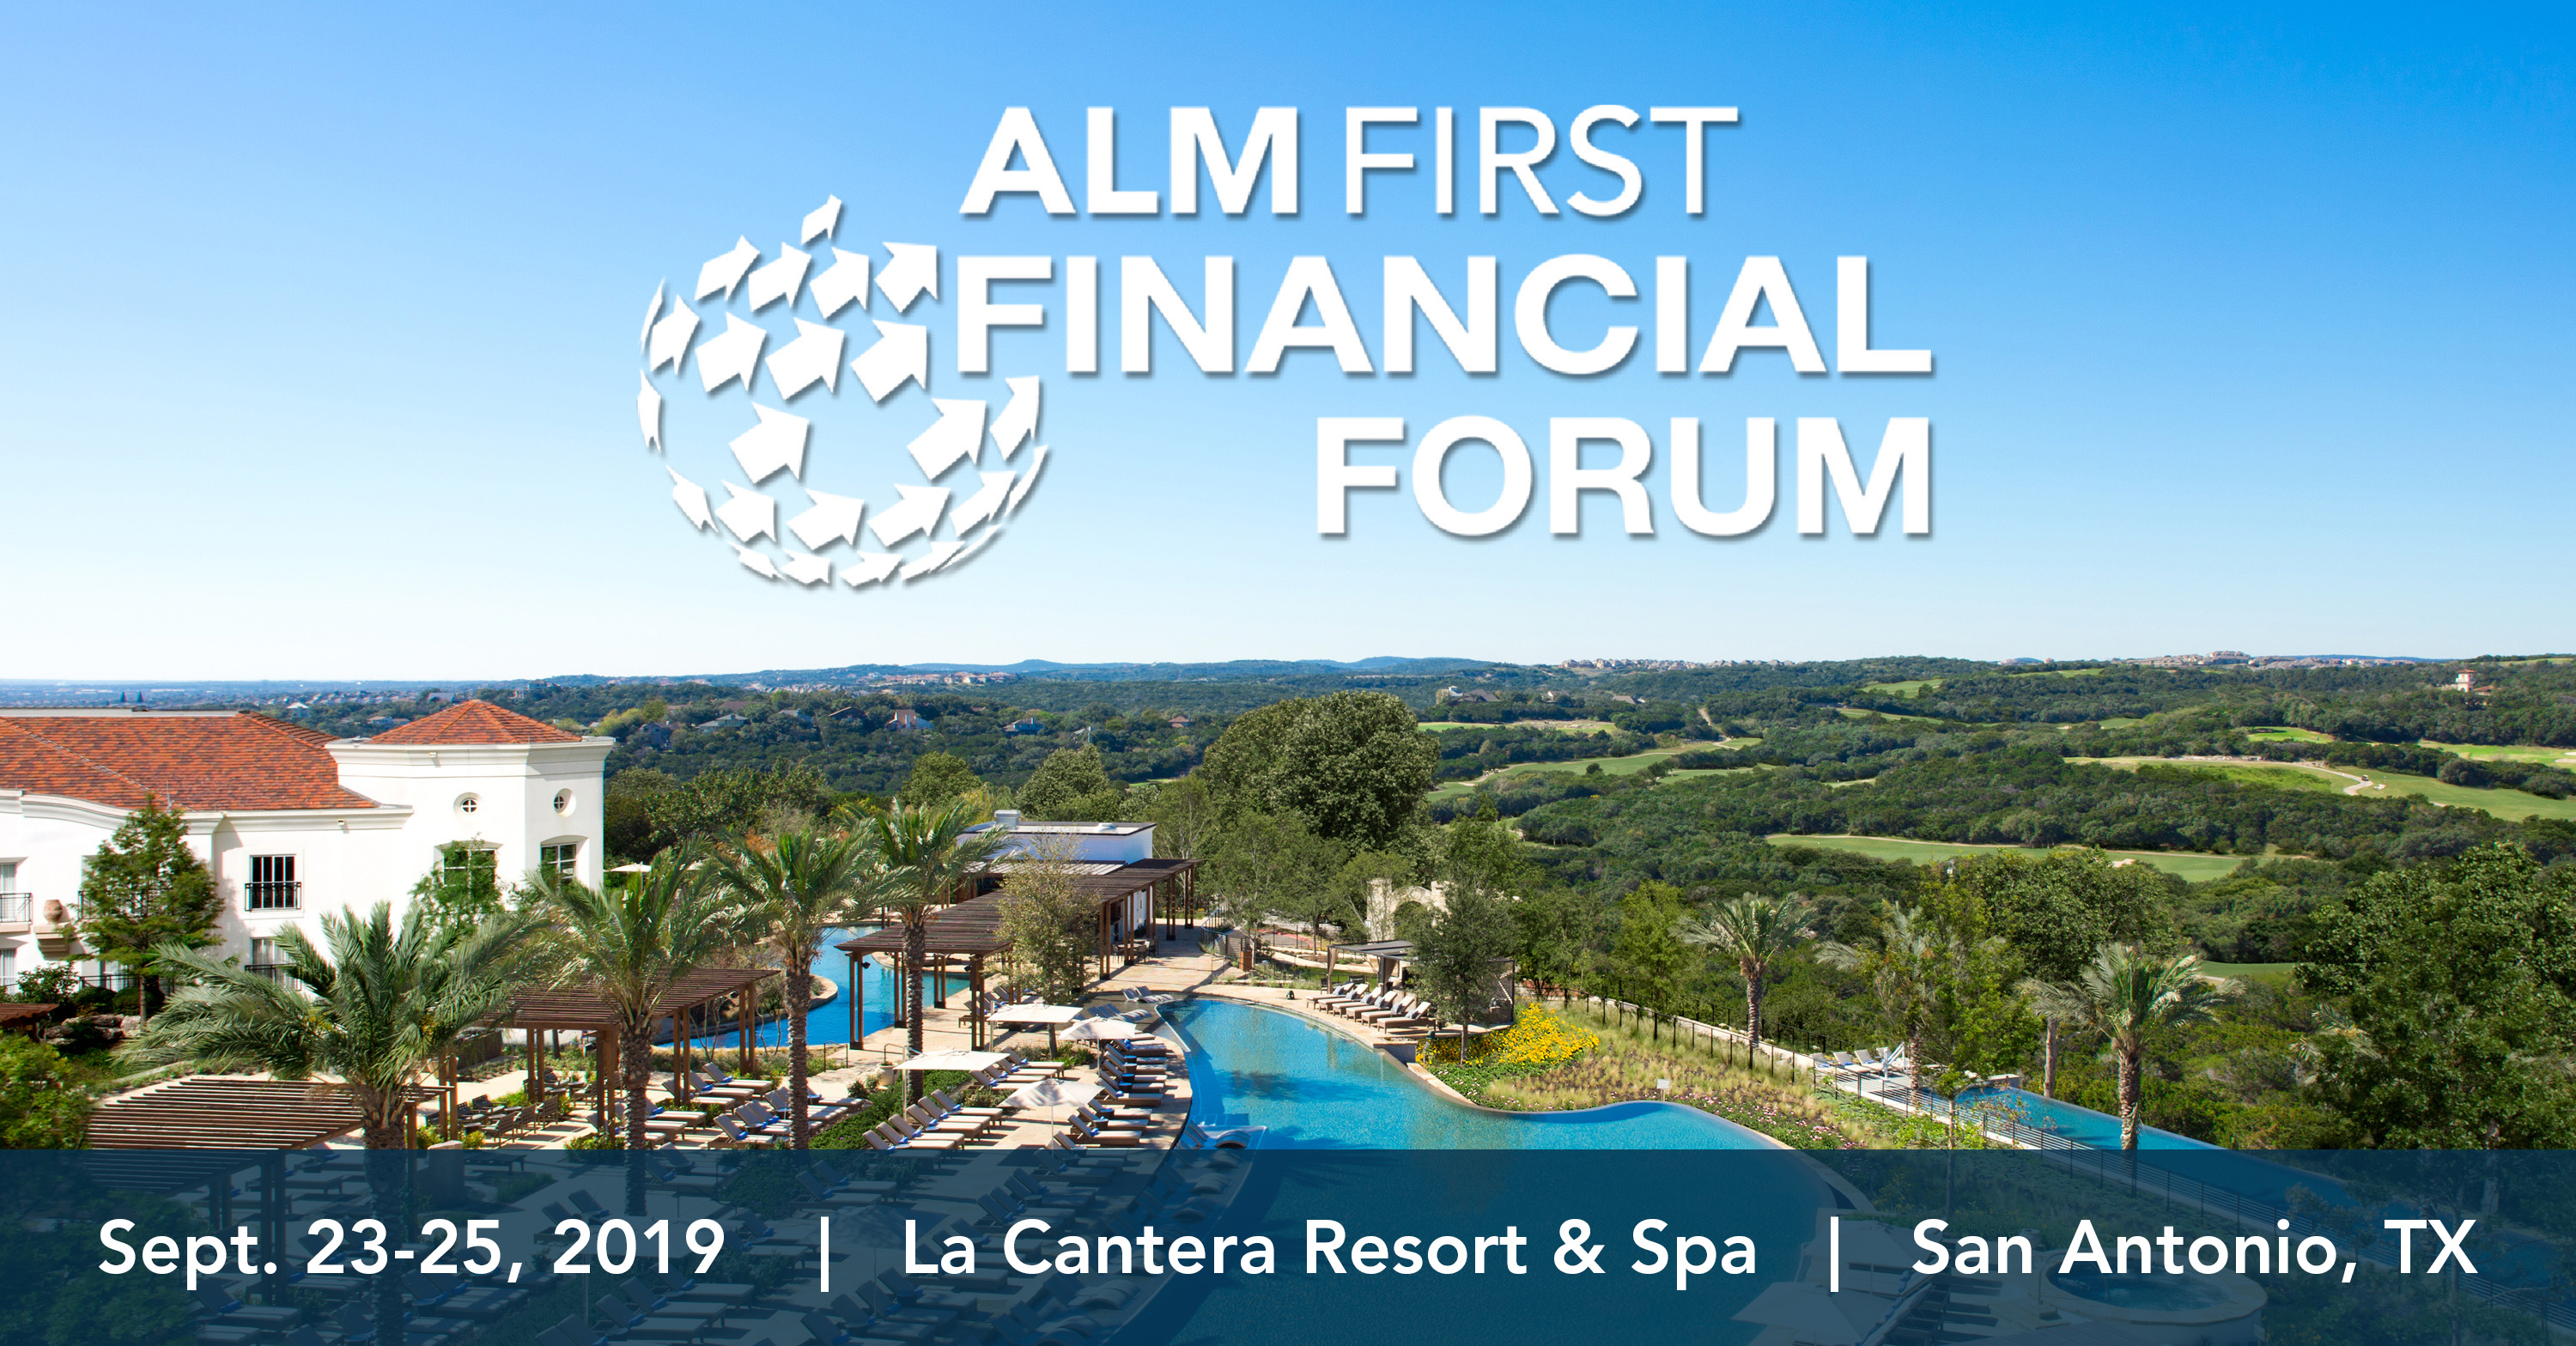 2019 ALM First Financial Forum